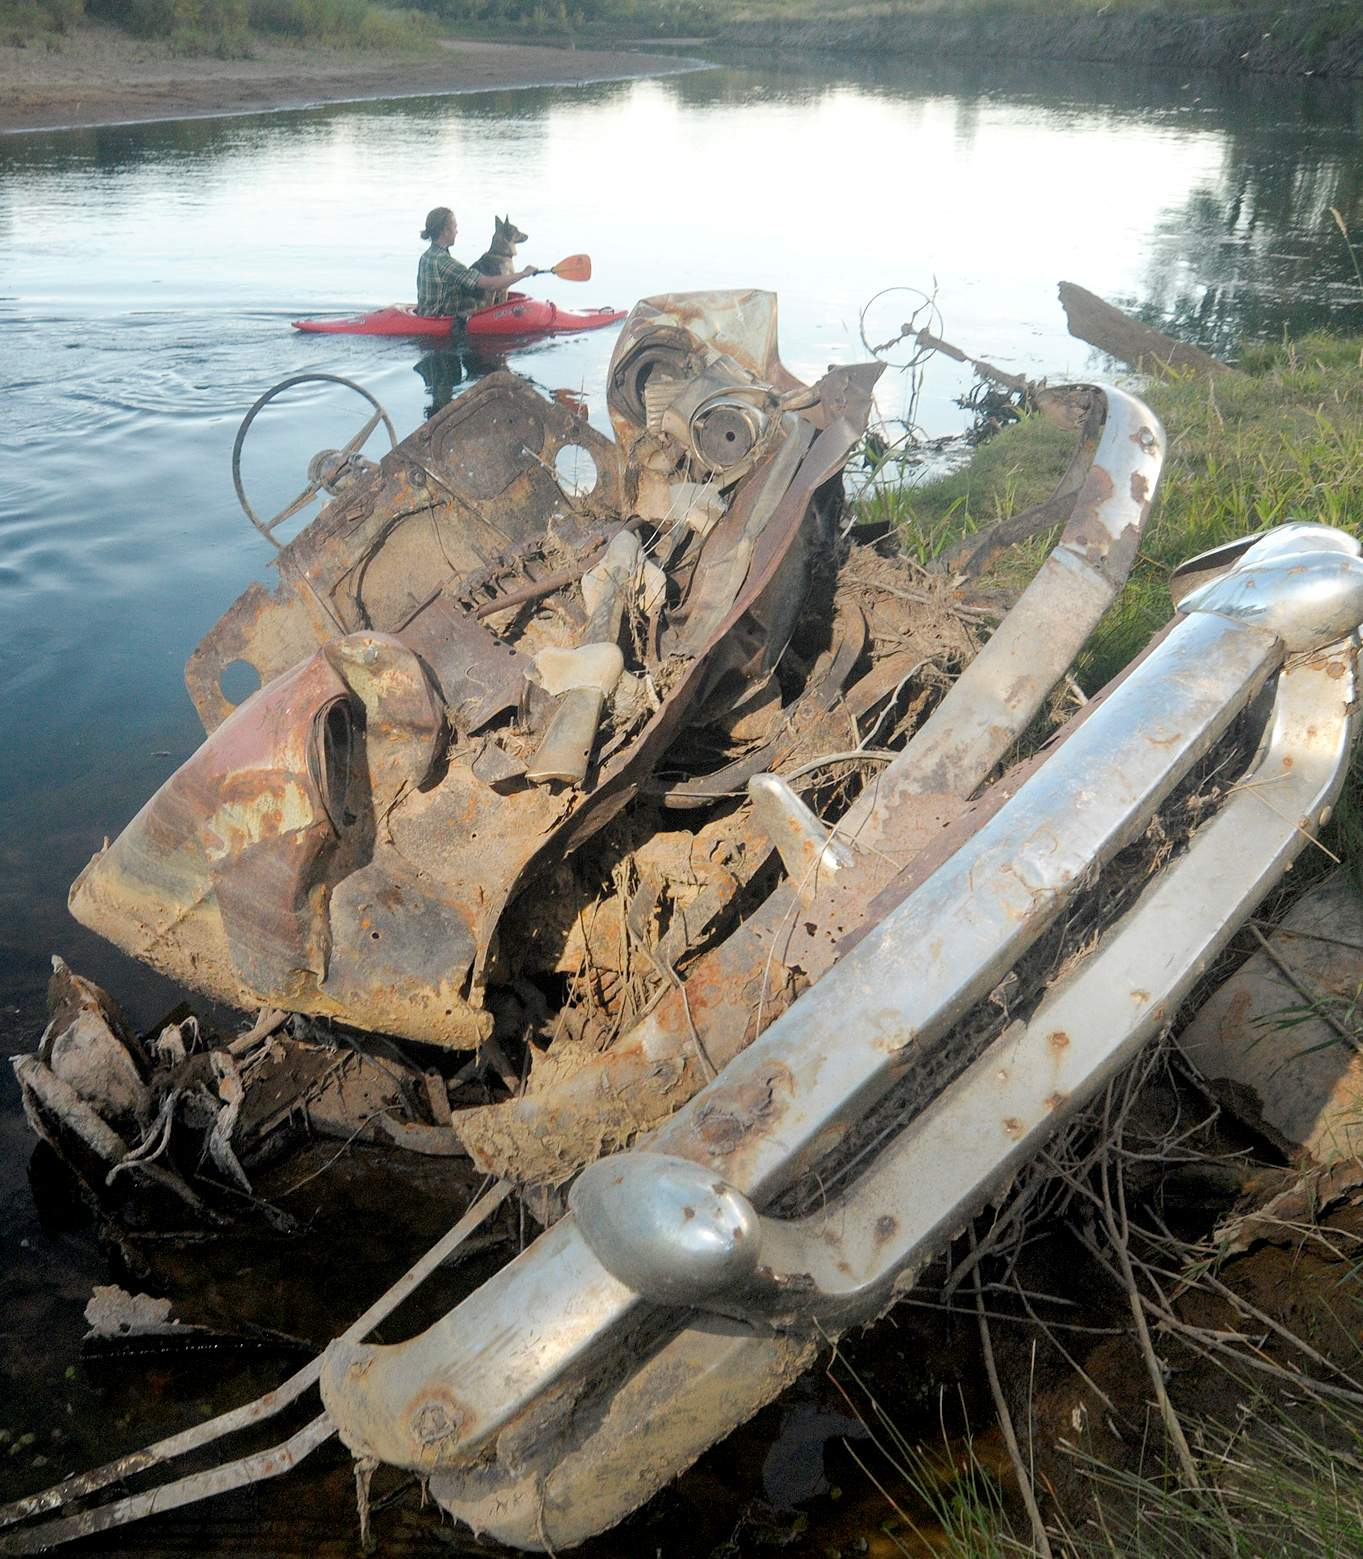 Junk cars emerge from river\'s banks